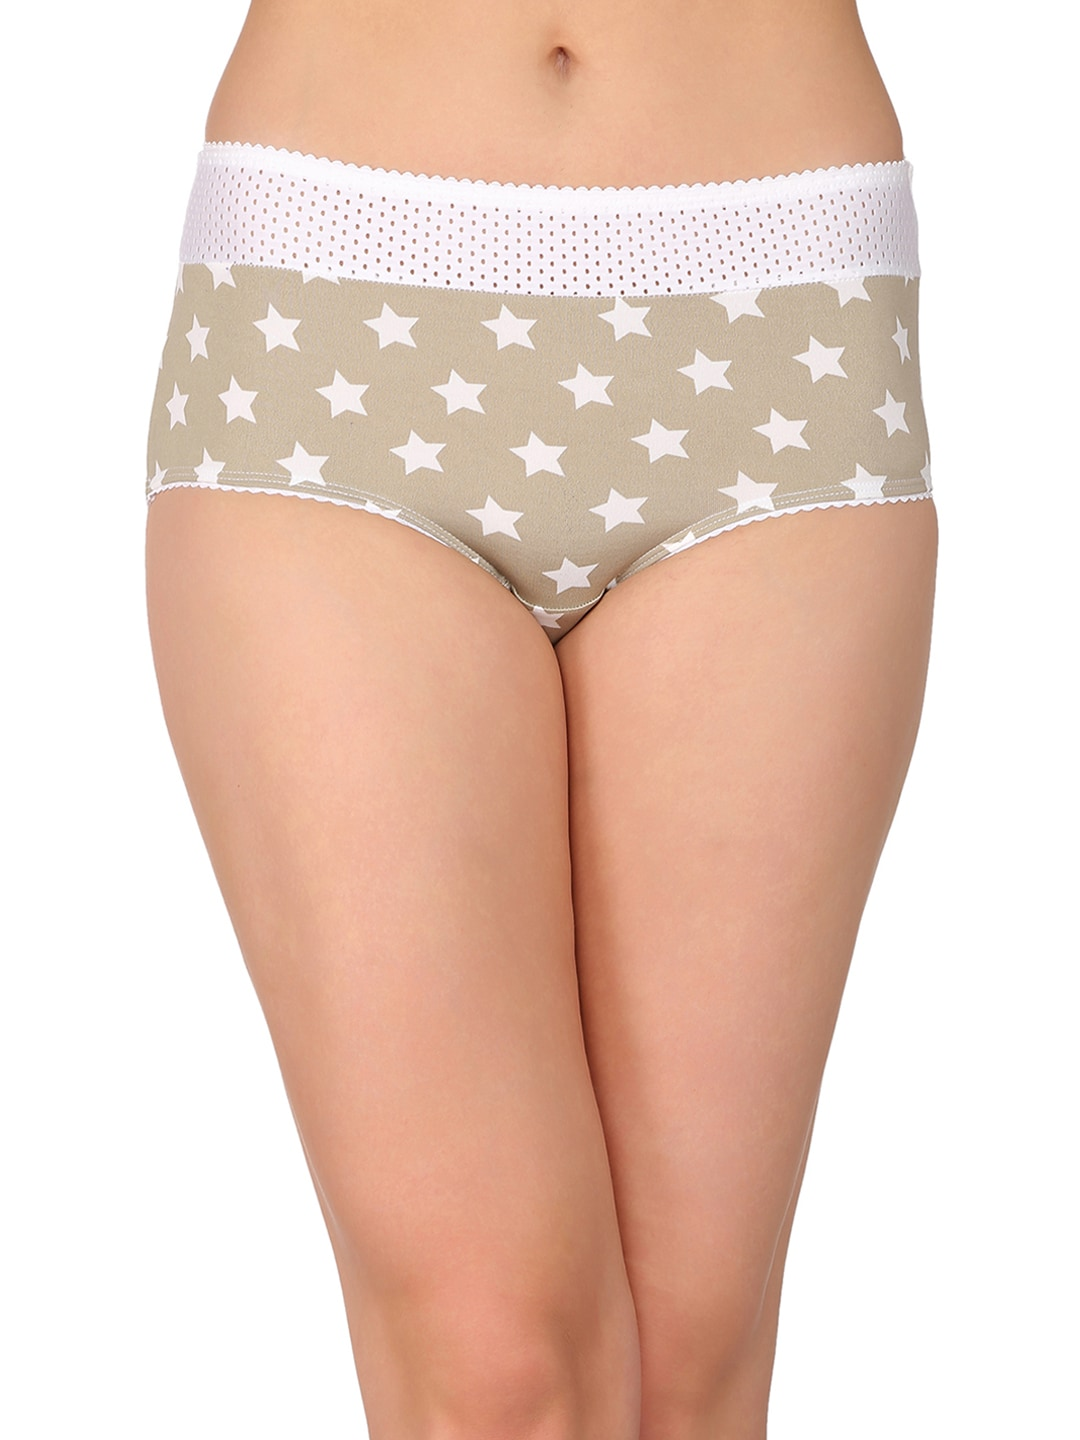 Clovia Women Olive Green & White Printed Hipster Briefs PN1843P11 image